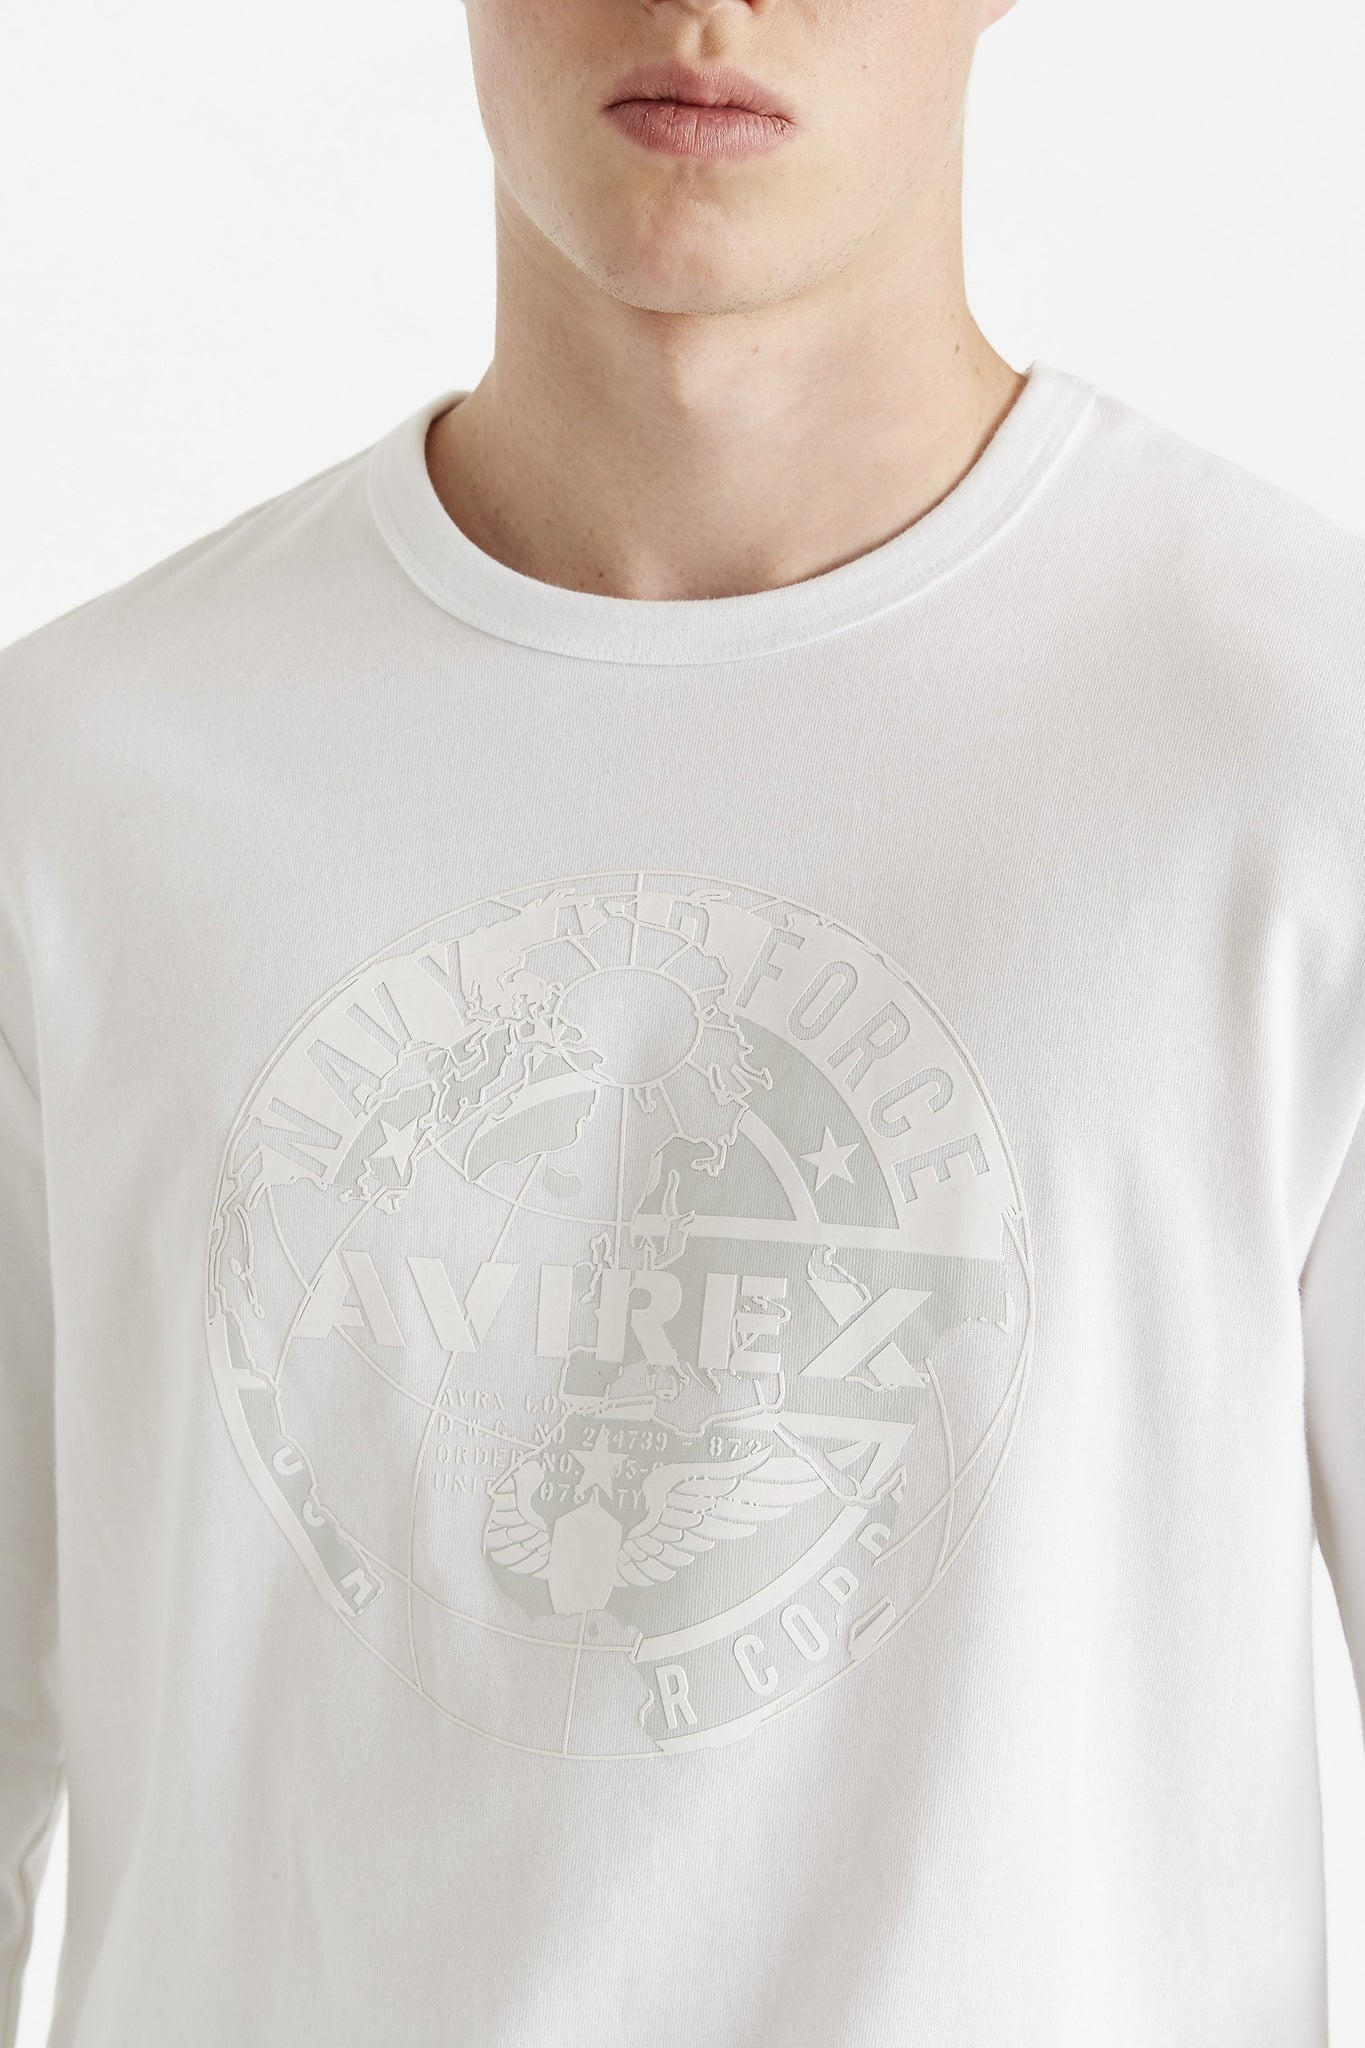 Detailed view of white round logo graphic print on chest